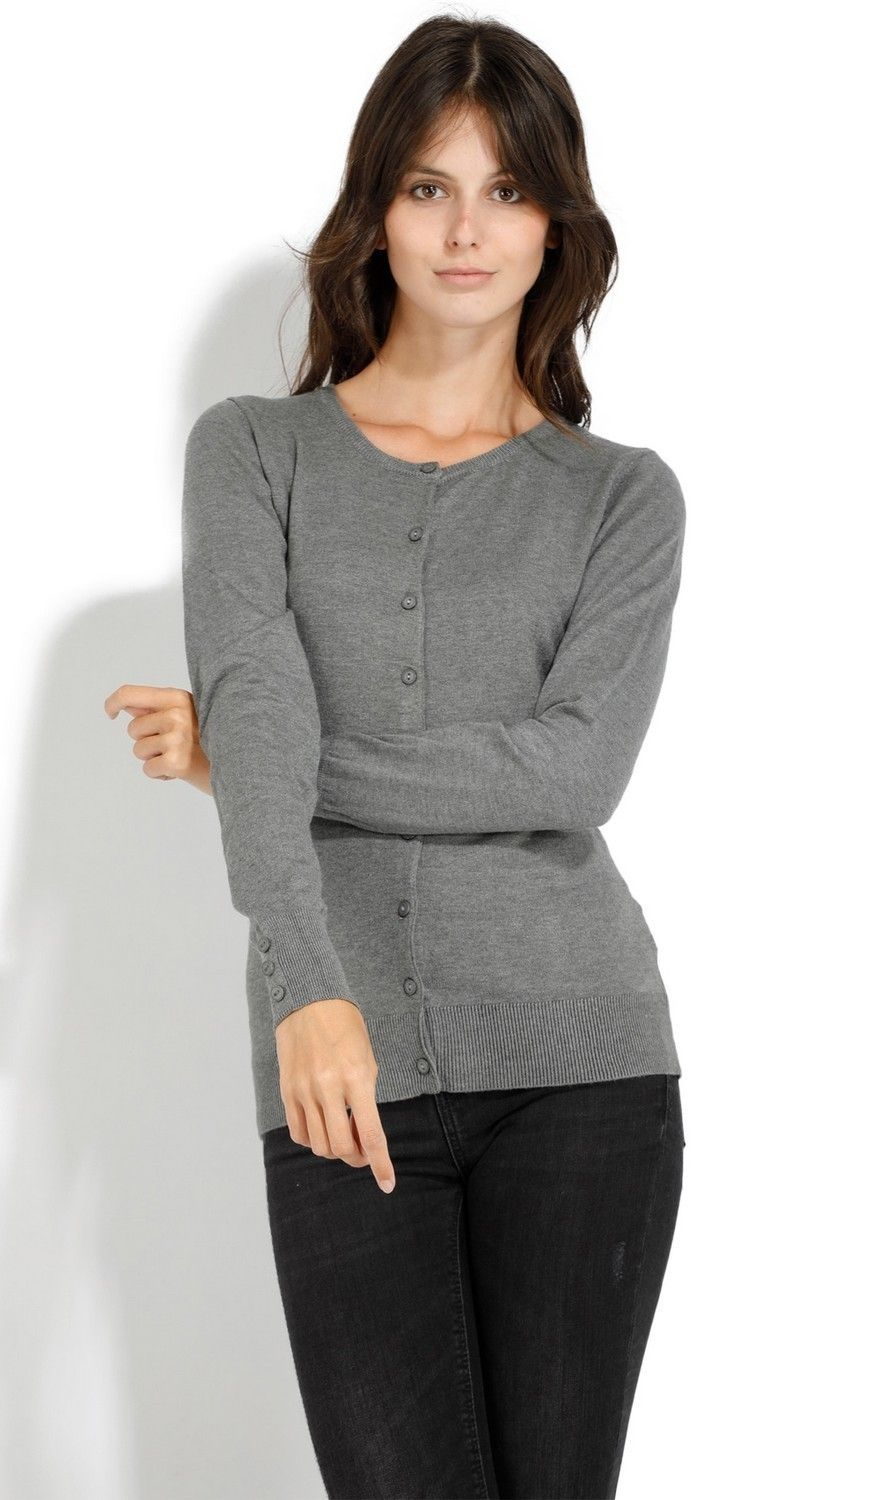 C&JO Round Neck Cardigan with Buttoned Sleeves in Grey